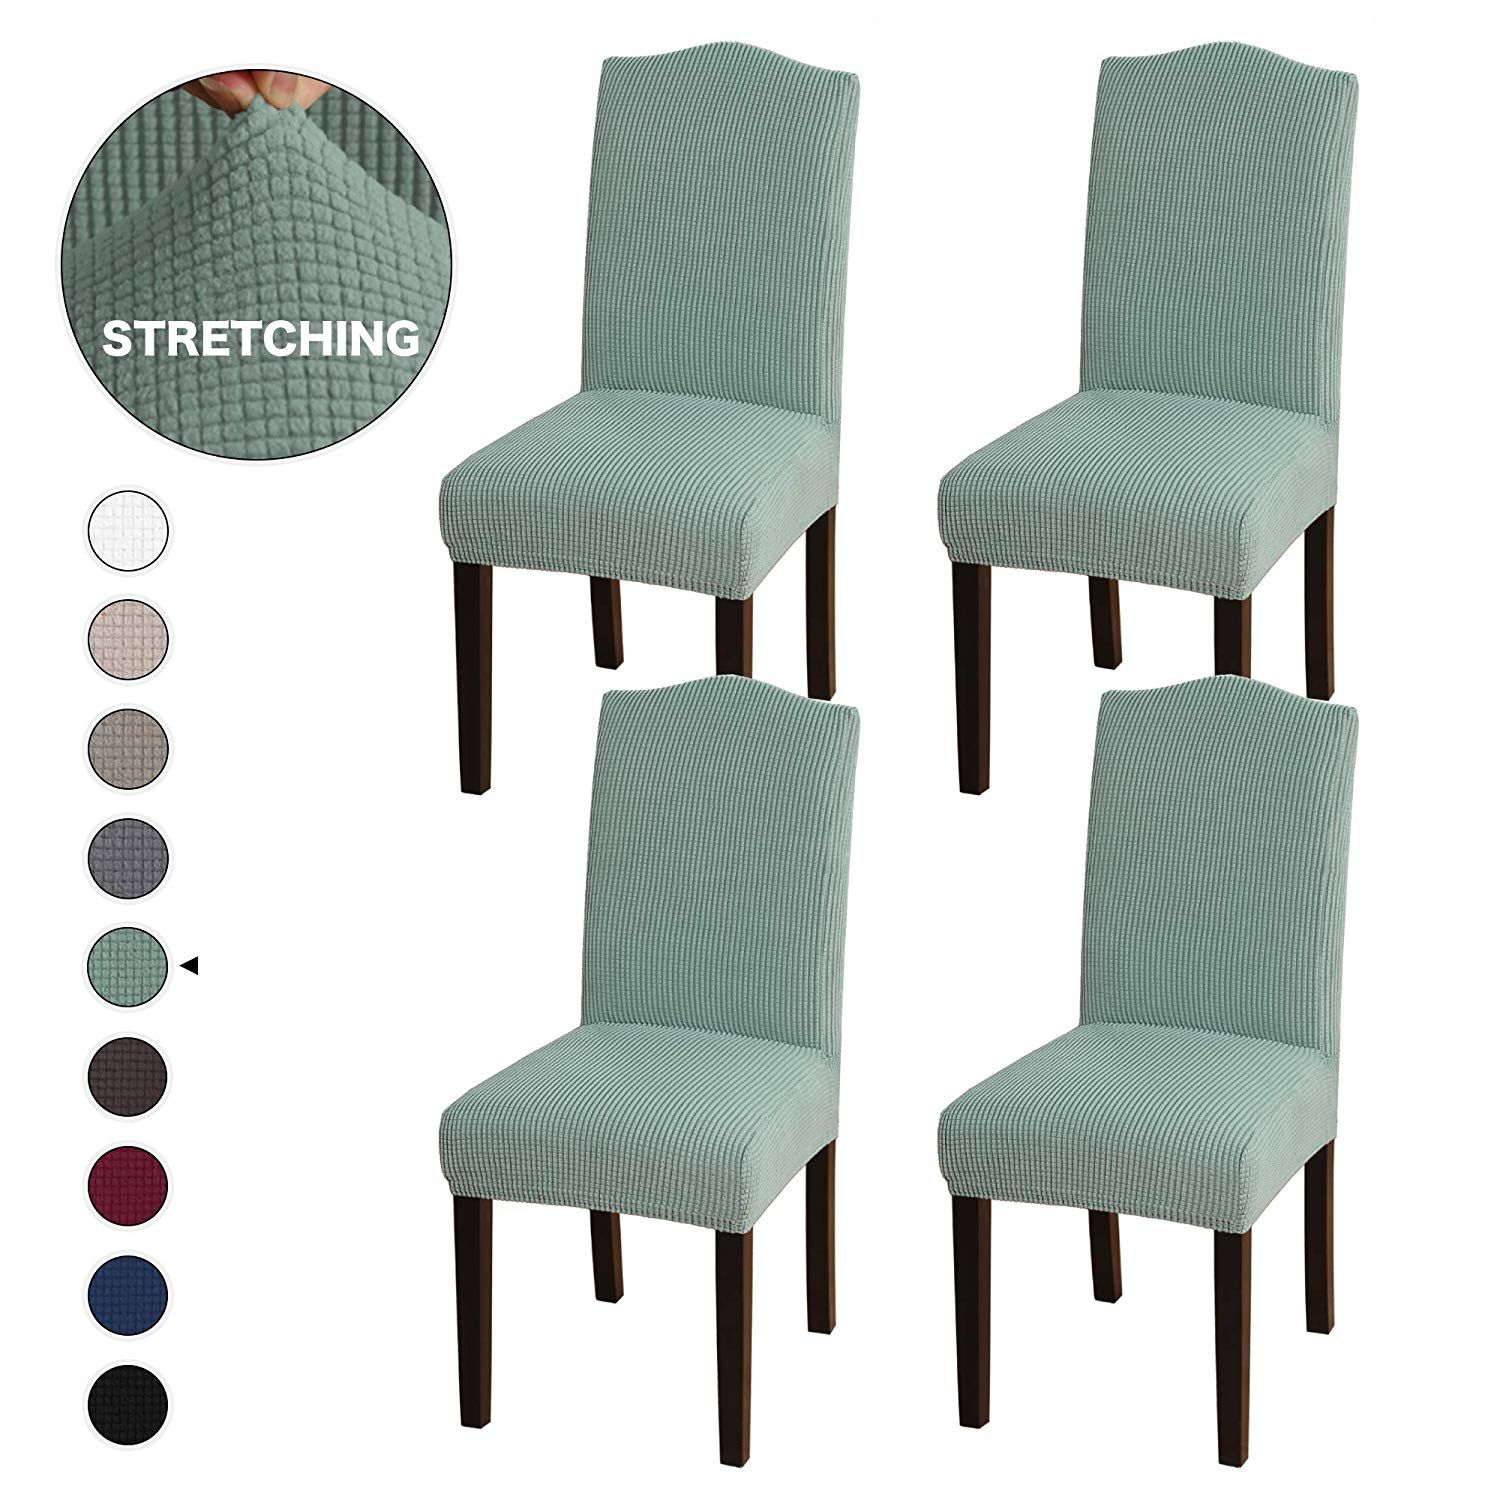 Turquoize Stretch Removable Washable Chair